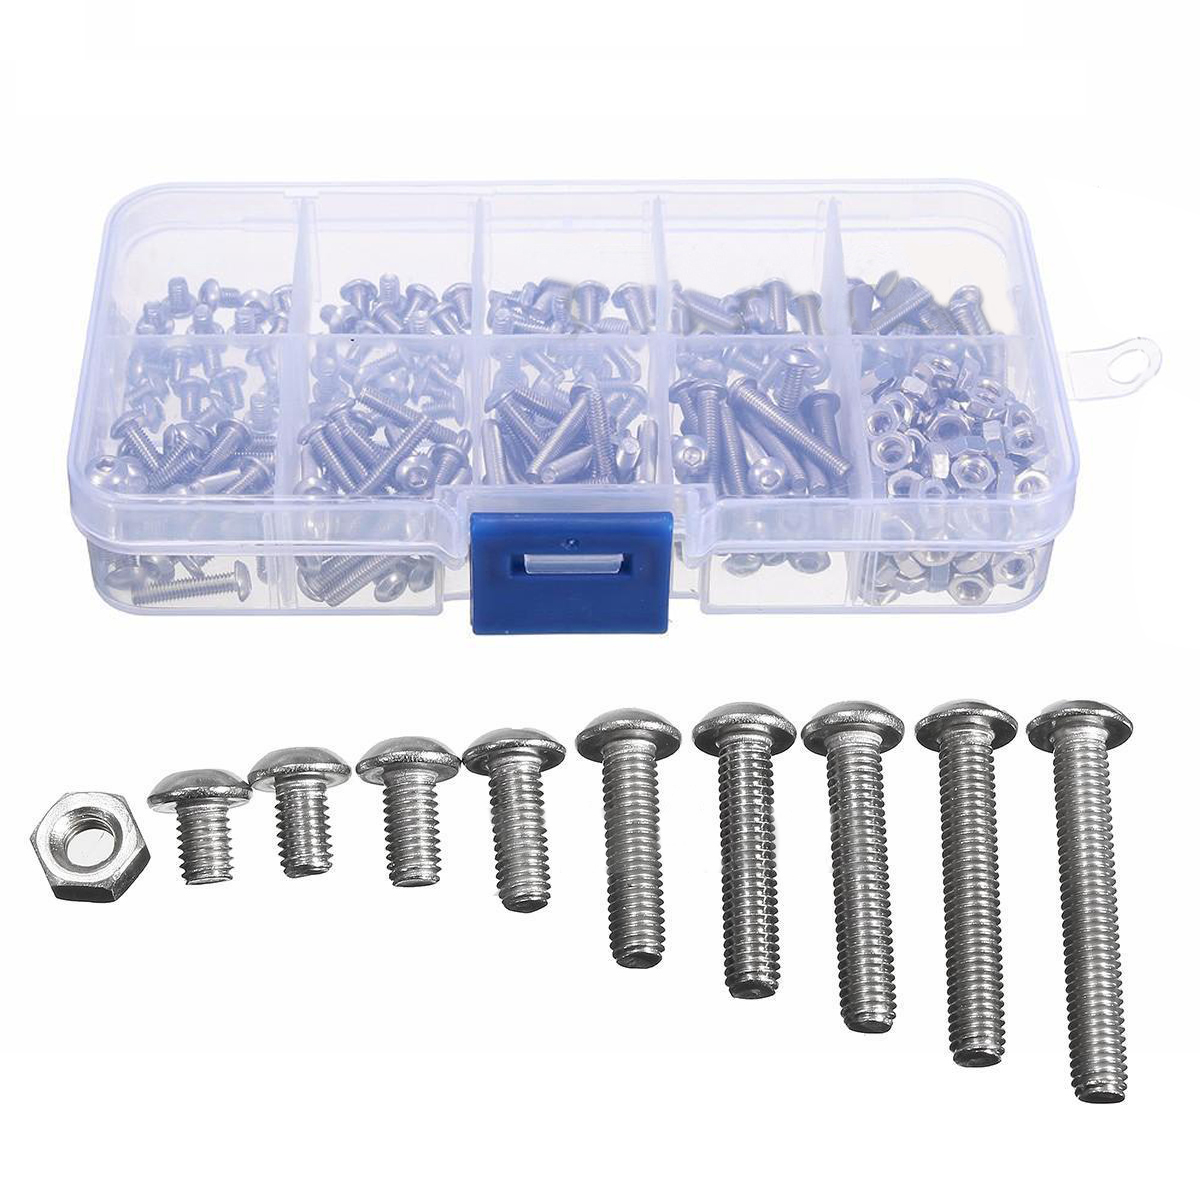 340pcs M3 A2 Hex Screw Kit Stainless Steel Nuts Bolt Cap Socket Assortment Set For Hardware Accessories 250pcs set m3 5 6 8 10 12 14 16 20 25mm hex socket head cap screw stainless steel m3 screw accessories kit sample box